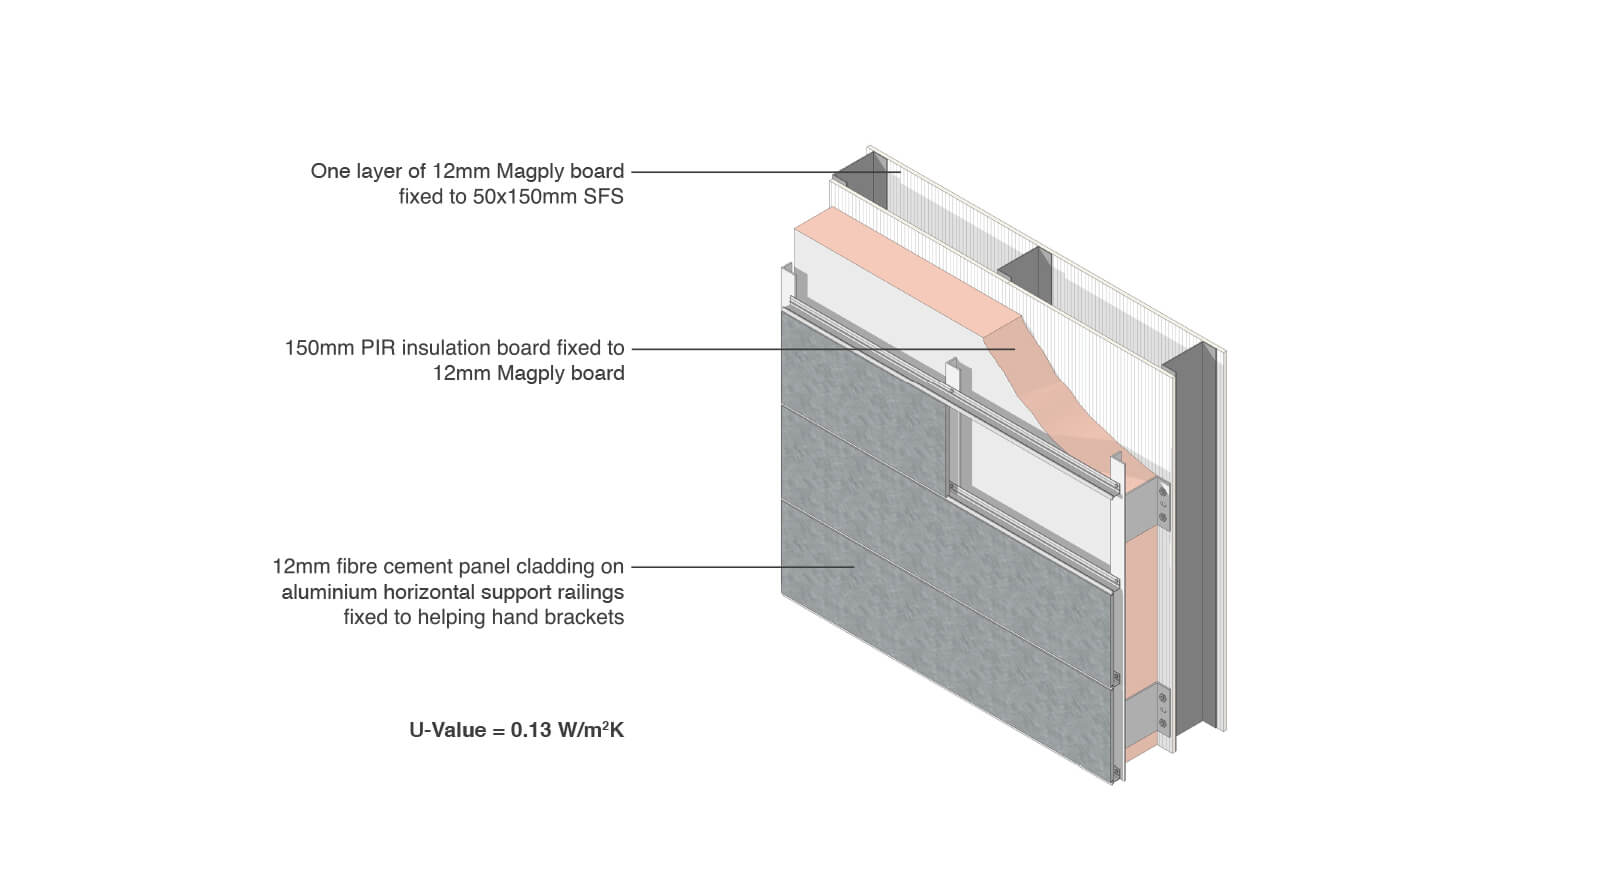 Fibre Cement Board Cladding : Magply for rainscreen cladding